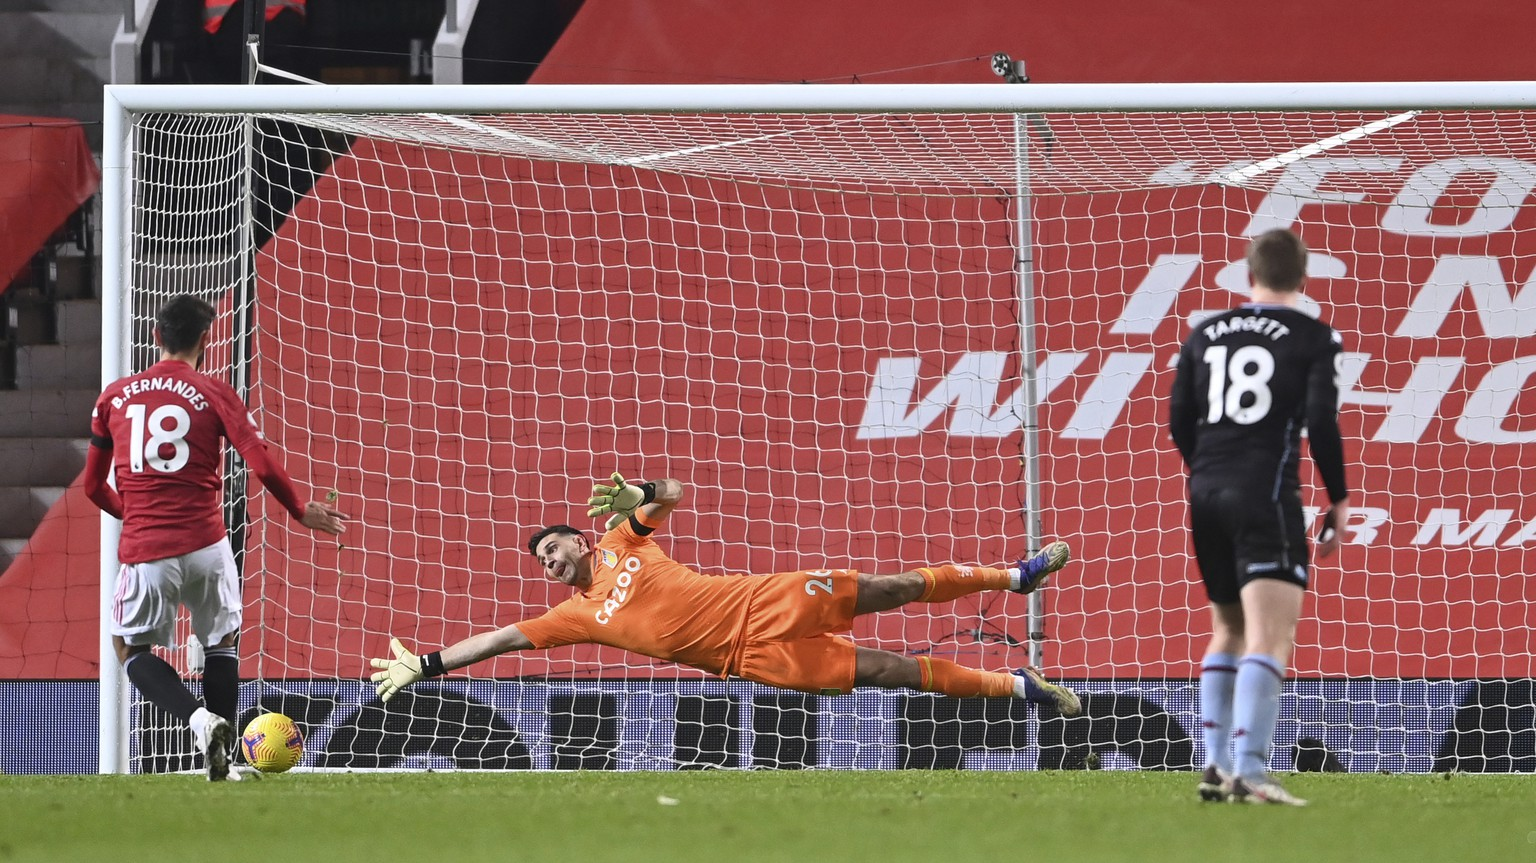 Manchester United's Bruno Fernandes, left scores from the penalty spot for his sides 2nd goal of the game past a diving Aston Villa's goalkeeper Emiliano Martinez during the English Premier League soccer match between Manchester United and Aston Villa at Old Trafford in Manchester, England, Friday, Jan. 1, 2021. (Lawrence Griffiths/ Pool via AP)